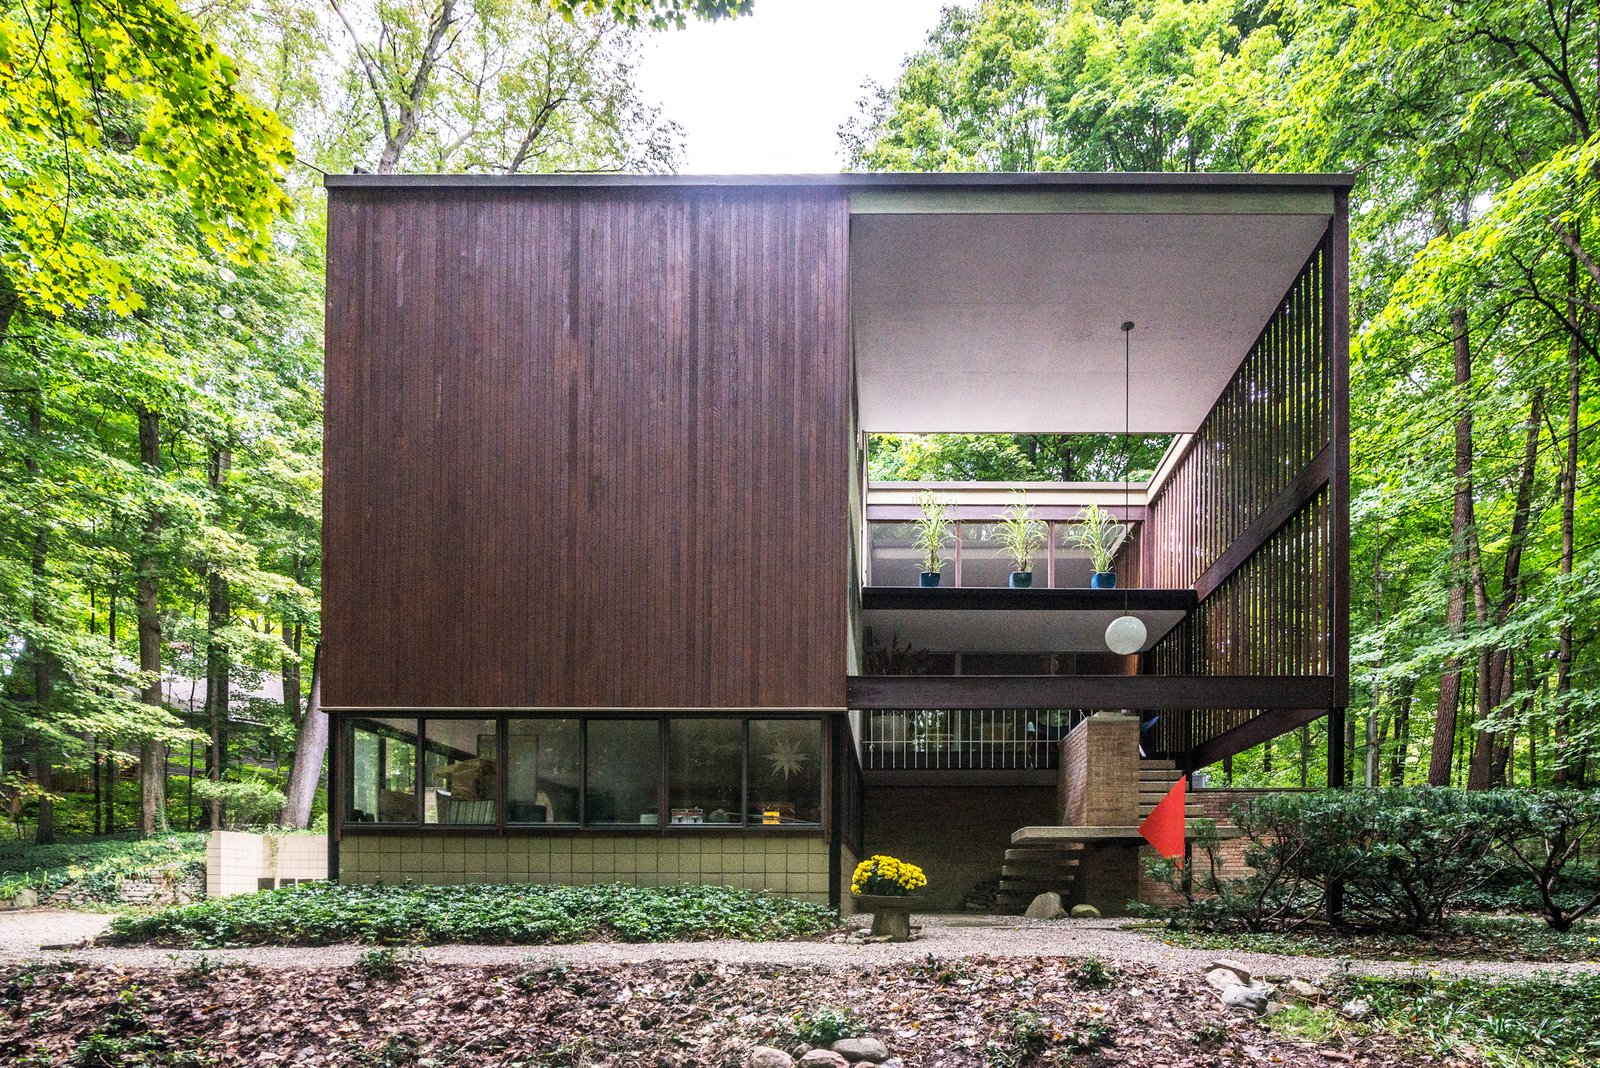 Photo 1 of 12 in An Award-Winning Midcentury Home Just Hit the Market for the First Time